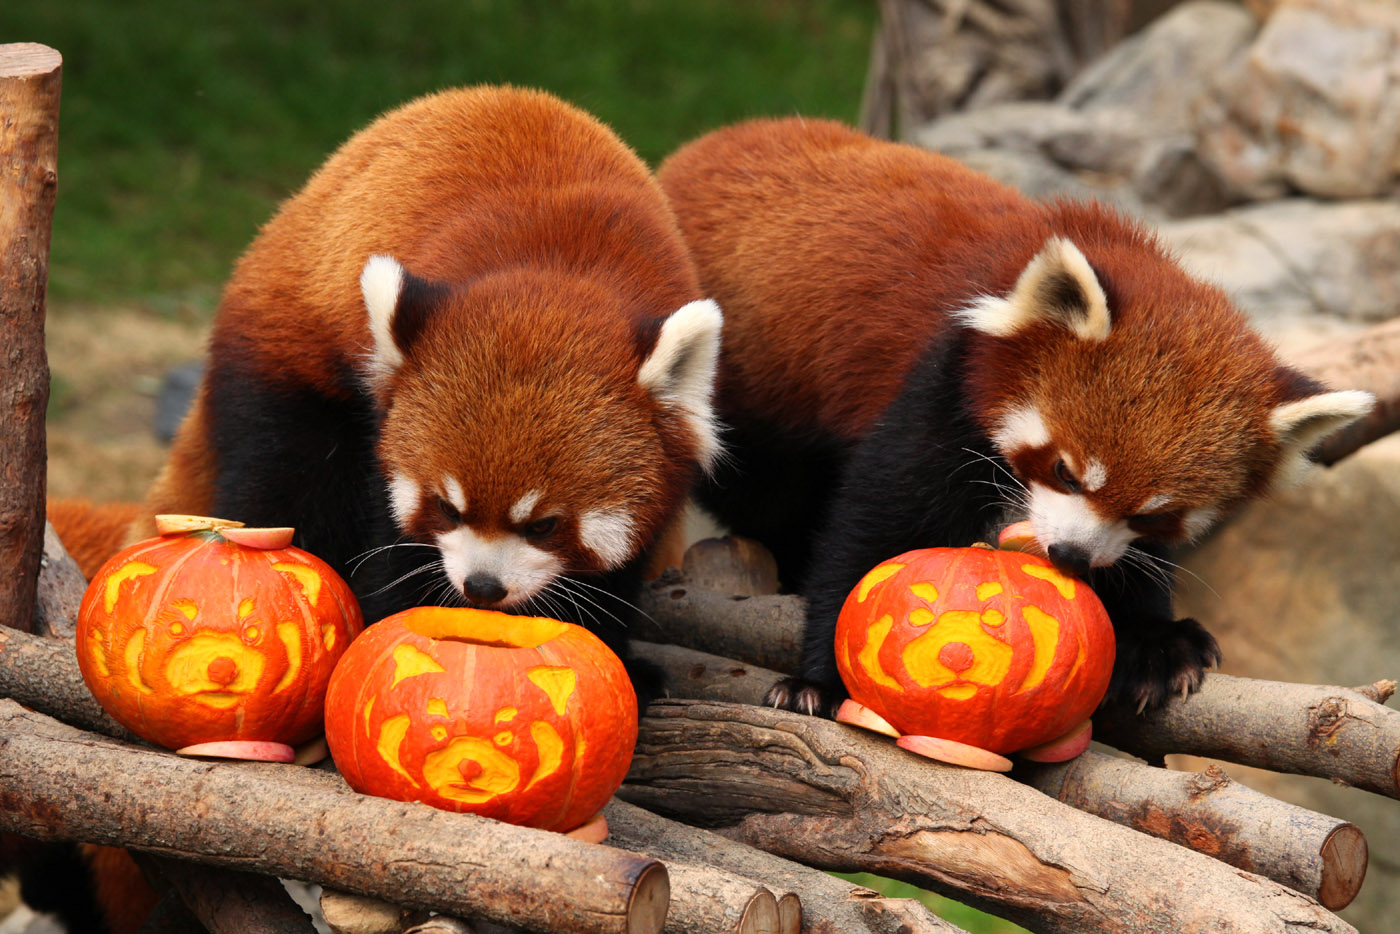 Cute Ducks In Water Wallpaper Red Pandas Celebrate Halloween Adorable Animals For Lois